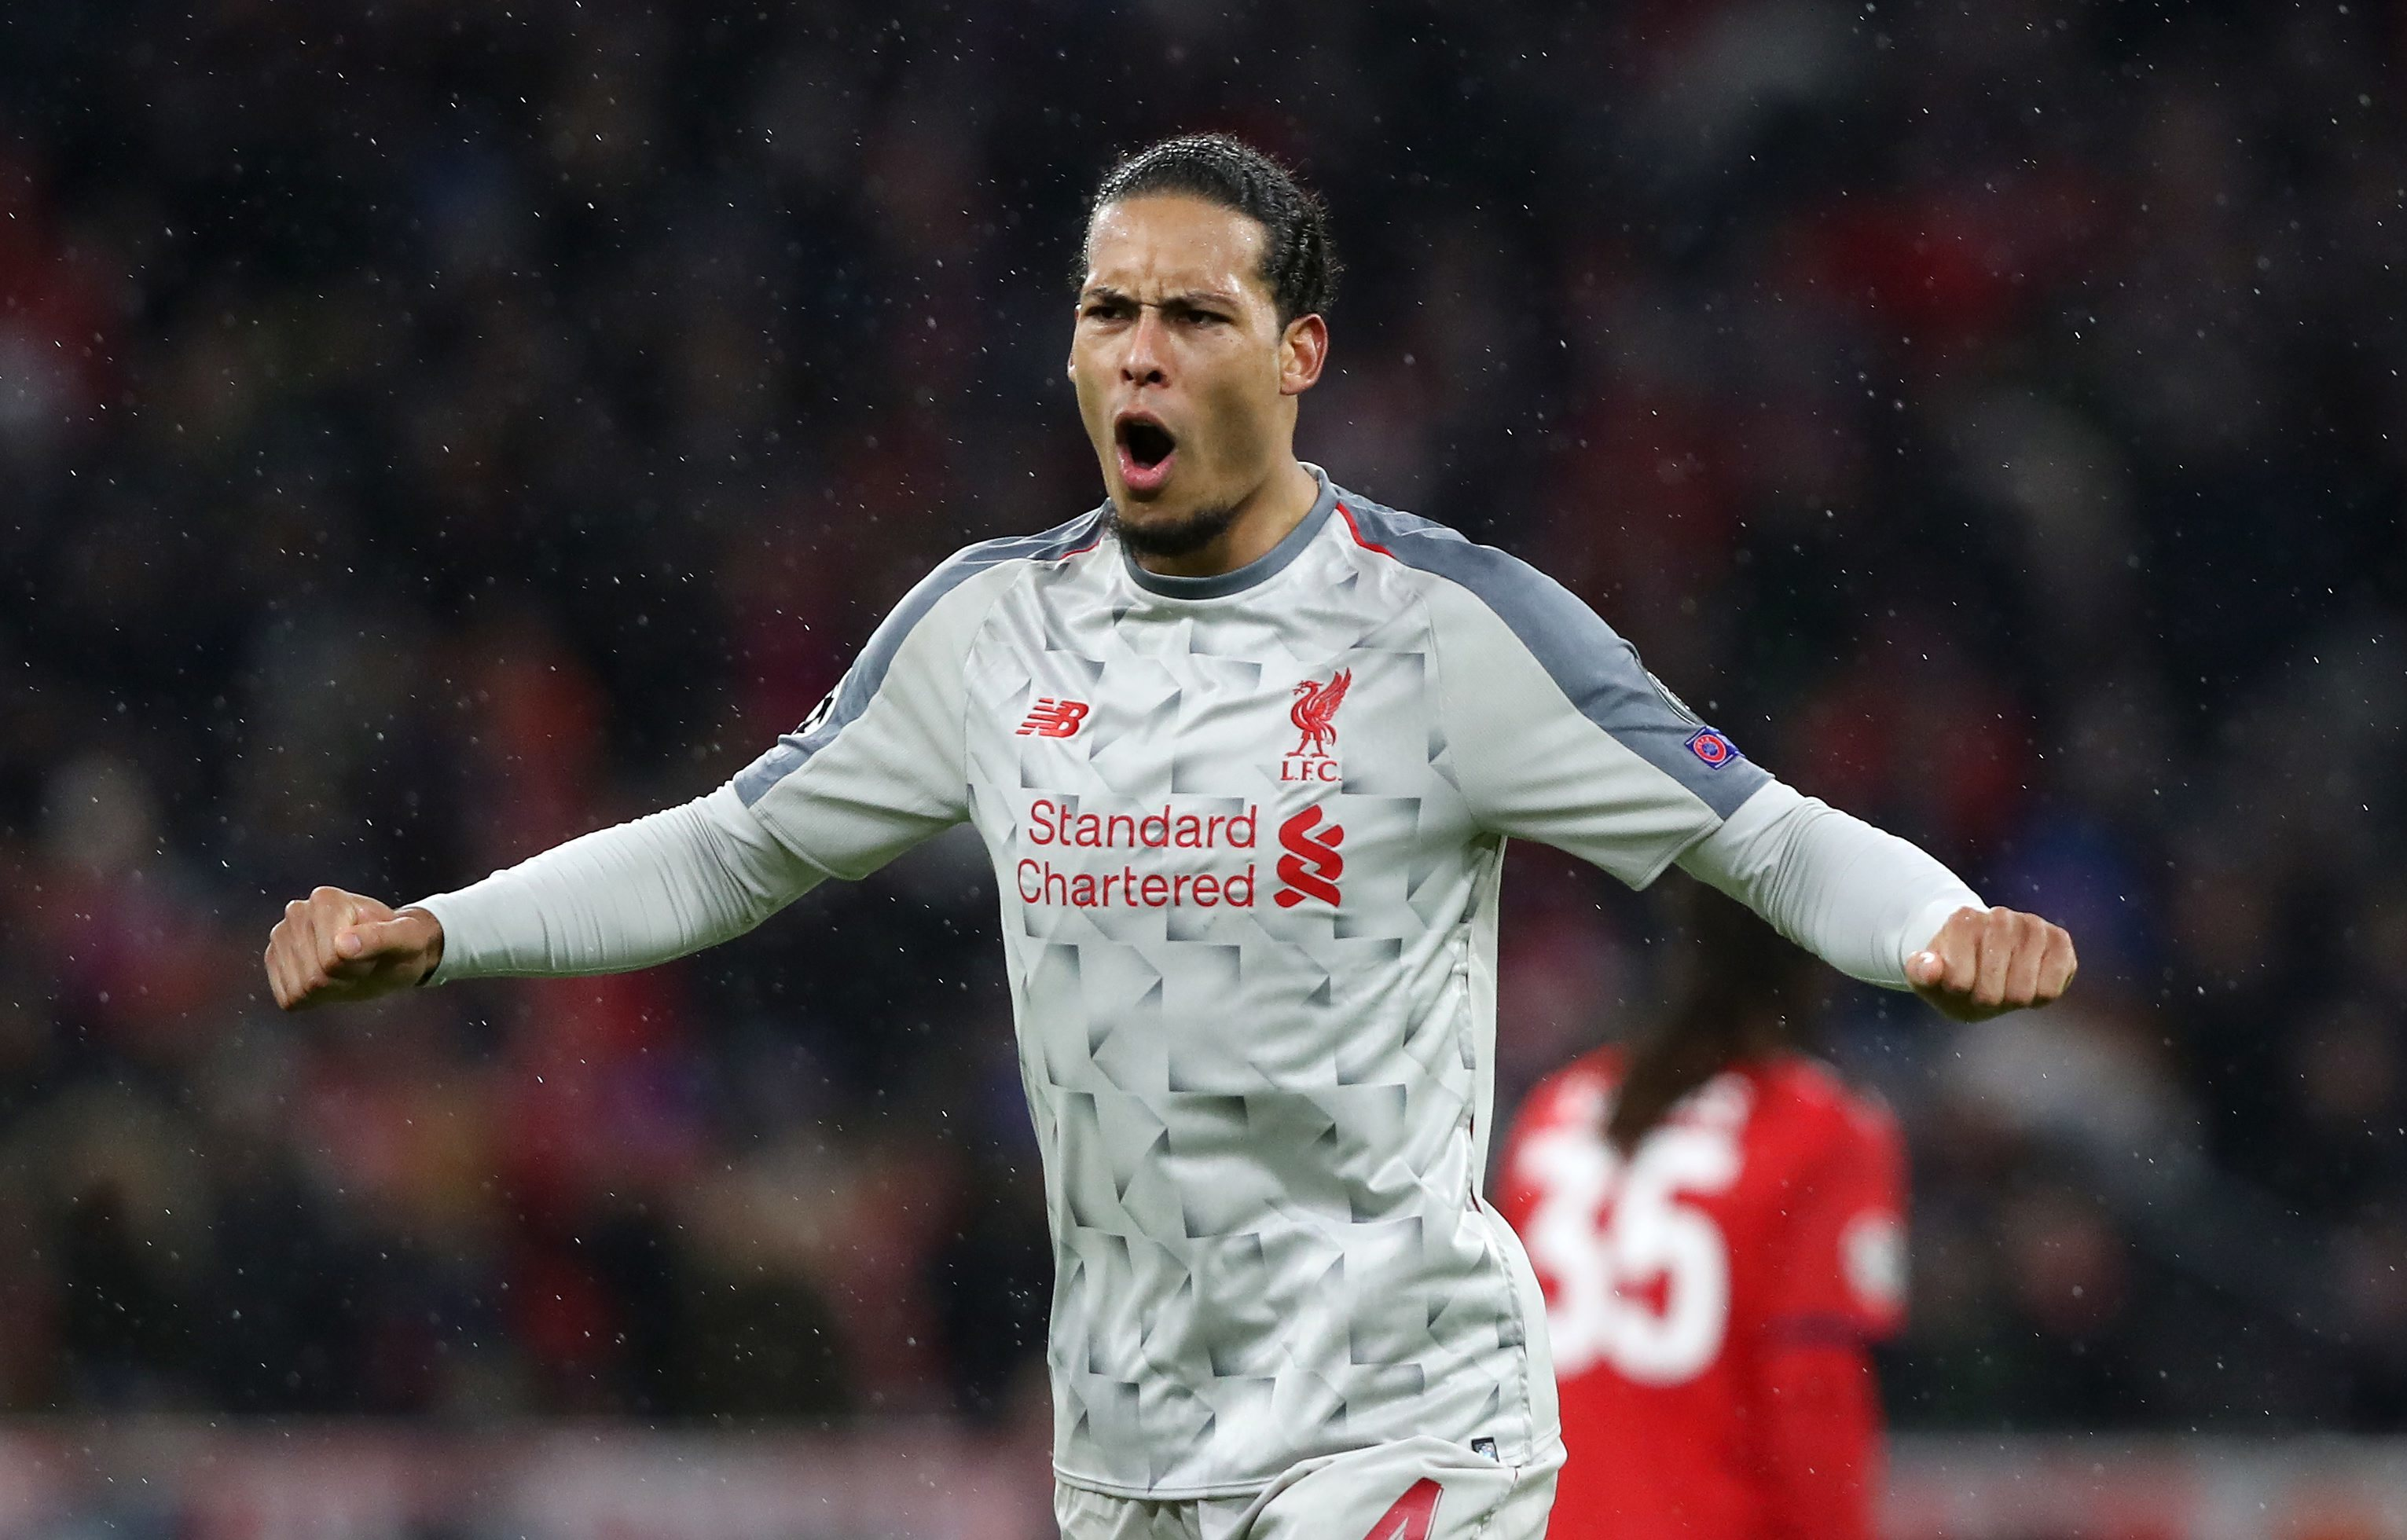 Van Dijk has been in imperious form this season. Image: PA Images